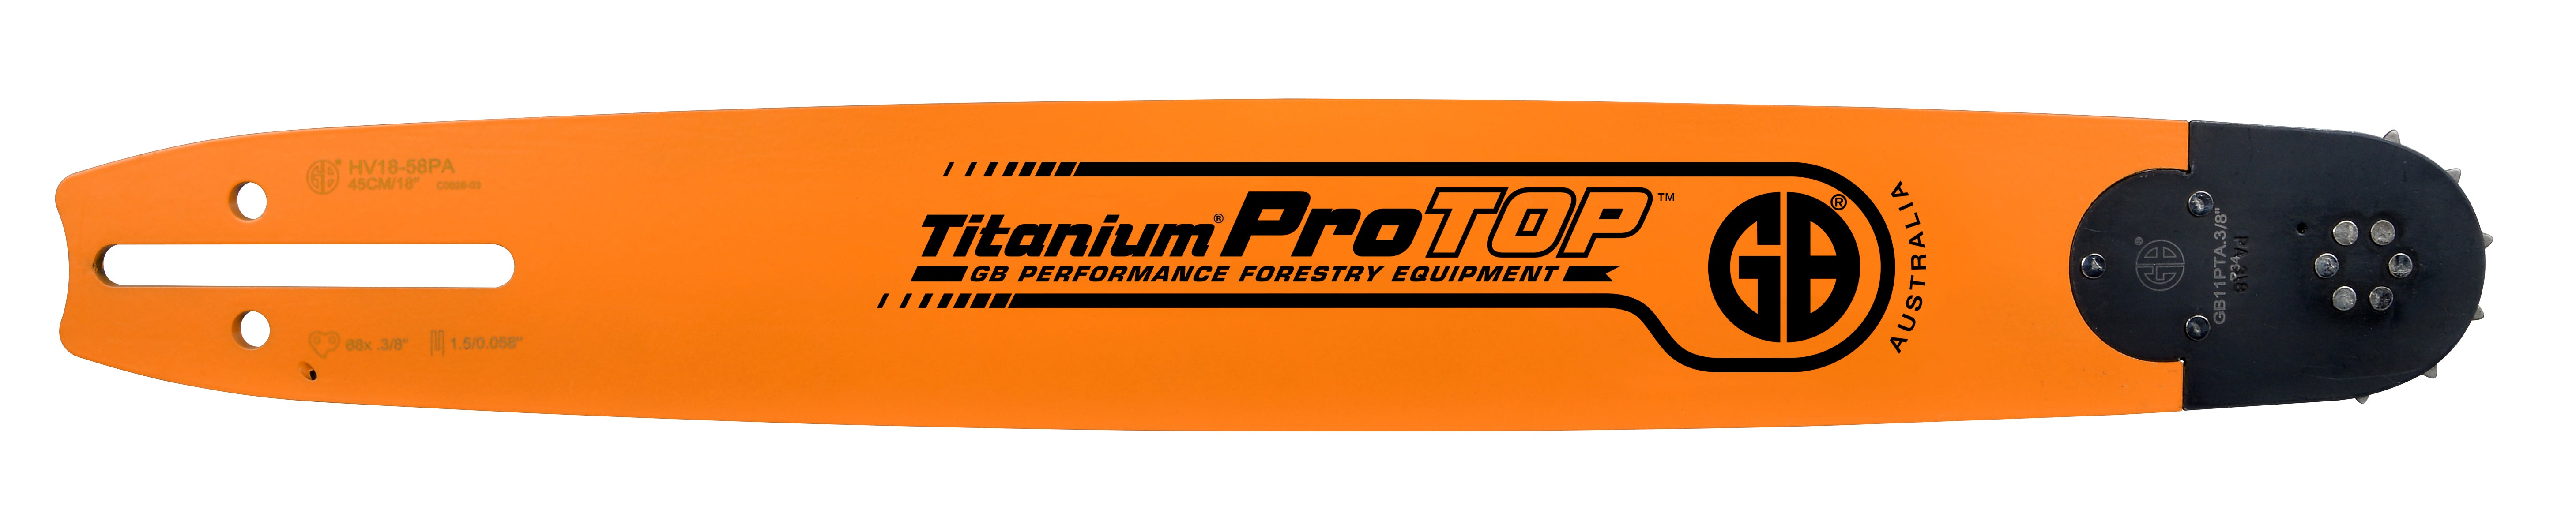 GB Titanium®ProTOP Chainsaw Bar HV20-50PA